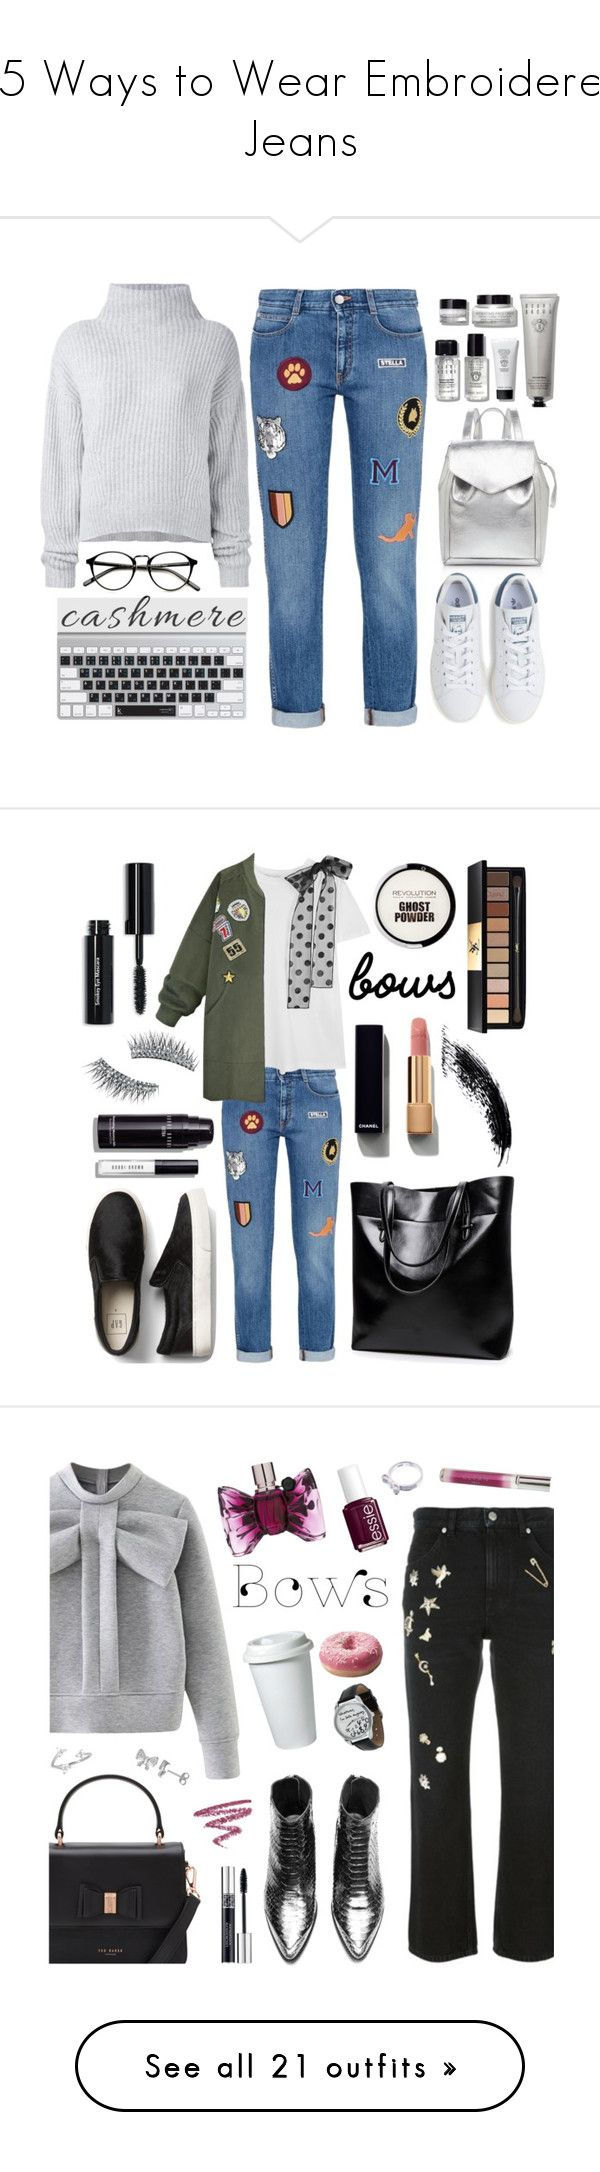 """15 Ways to Wear Embroidered Jeans"" by polyvore-editorial ❤ liked on Polyvore featuring waystowear, embroideredjeans, Le Kasha, Bobbi Brown Cosmetics, STELLA McCARTNEY, Loeffler Randall, adidas, cashmere, RED Valentino and WithChic"